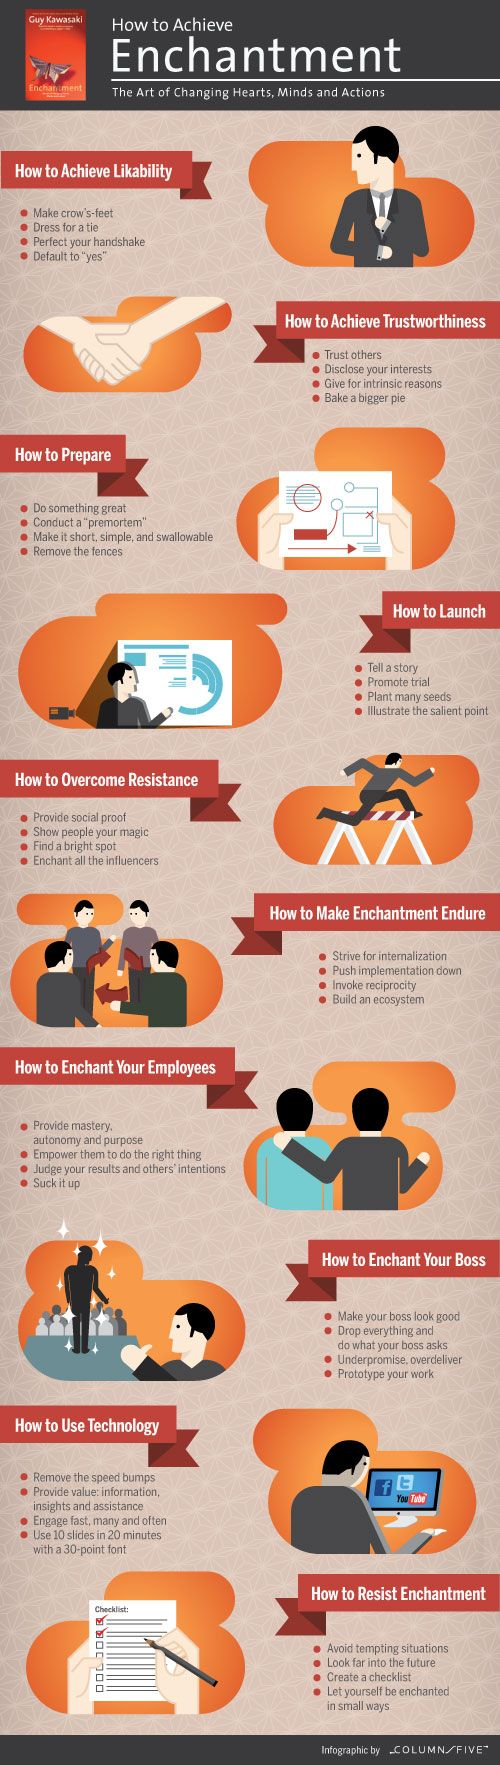 Infographic of Guy Kawasaki's book 'Enchantment'. Do you enchant your customers/clients/employees?